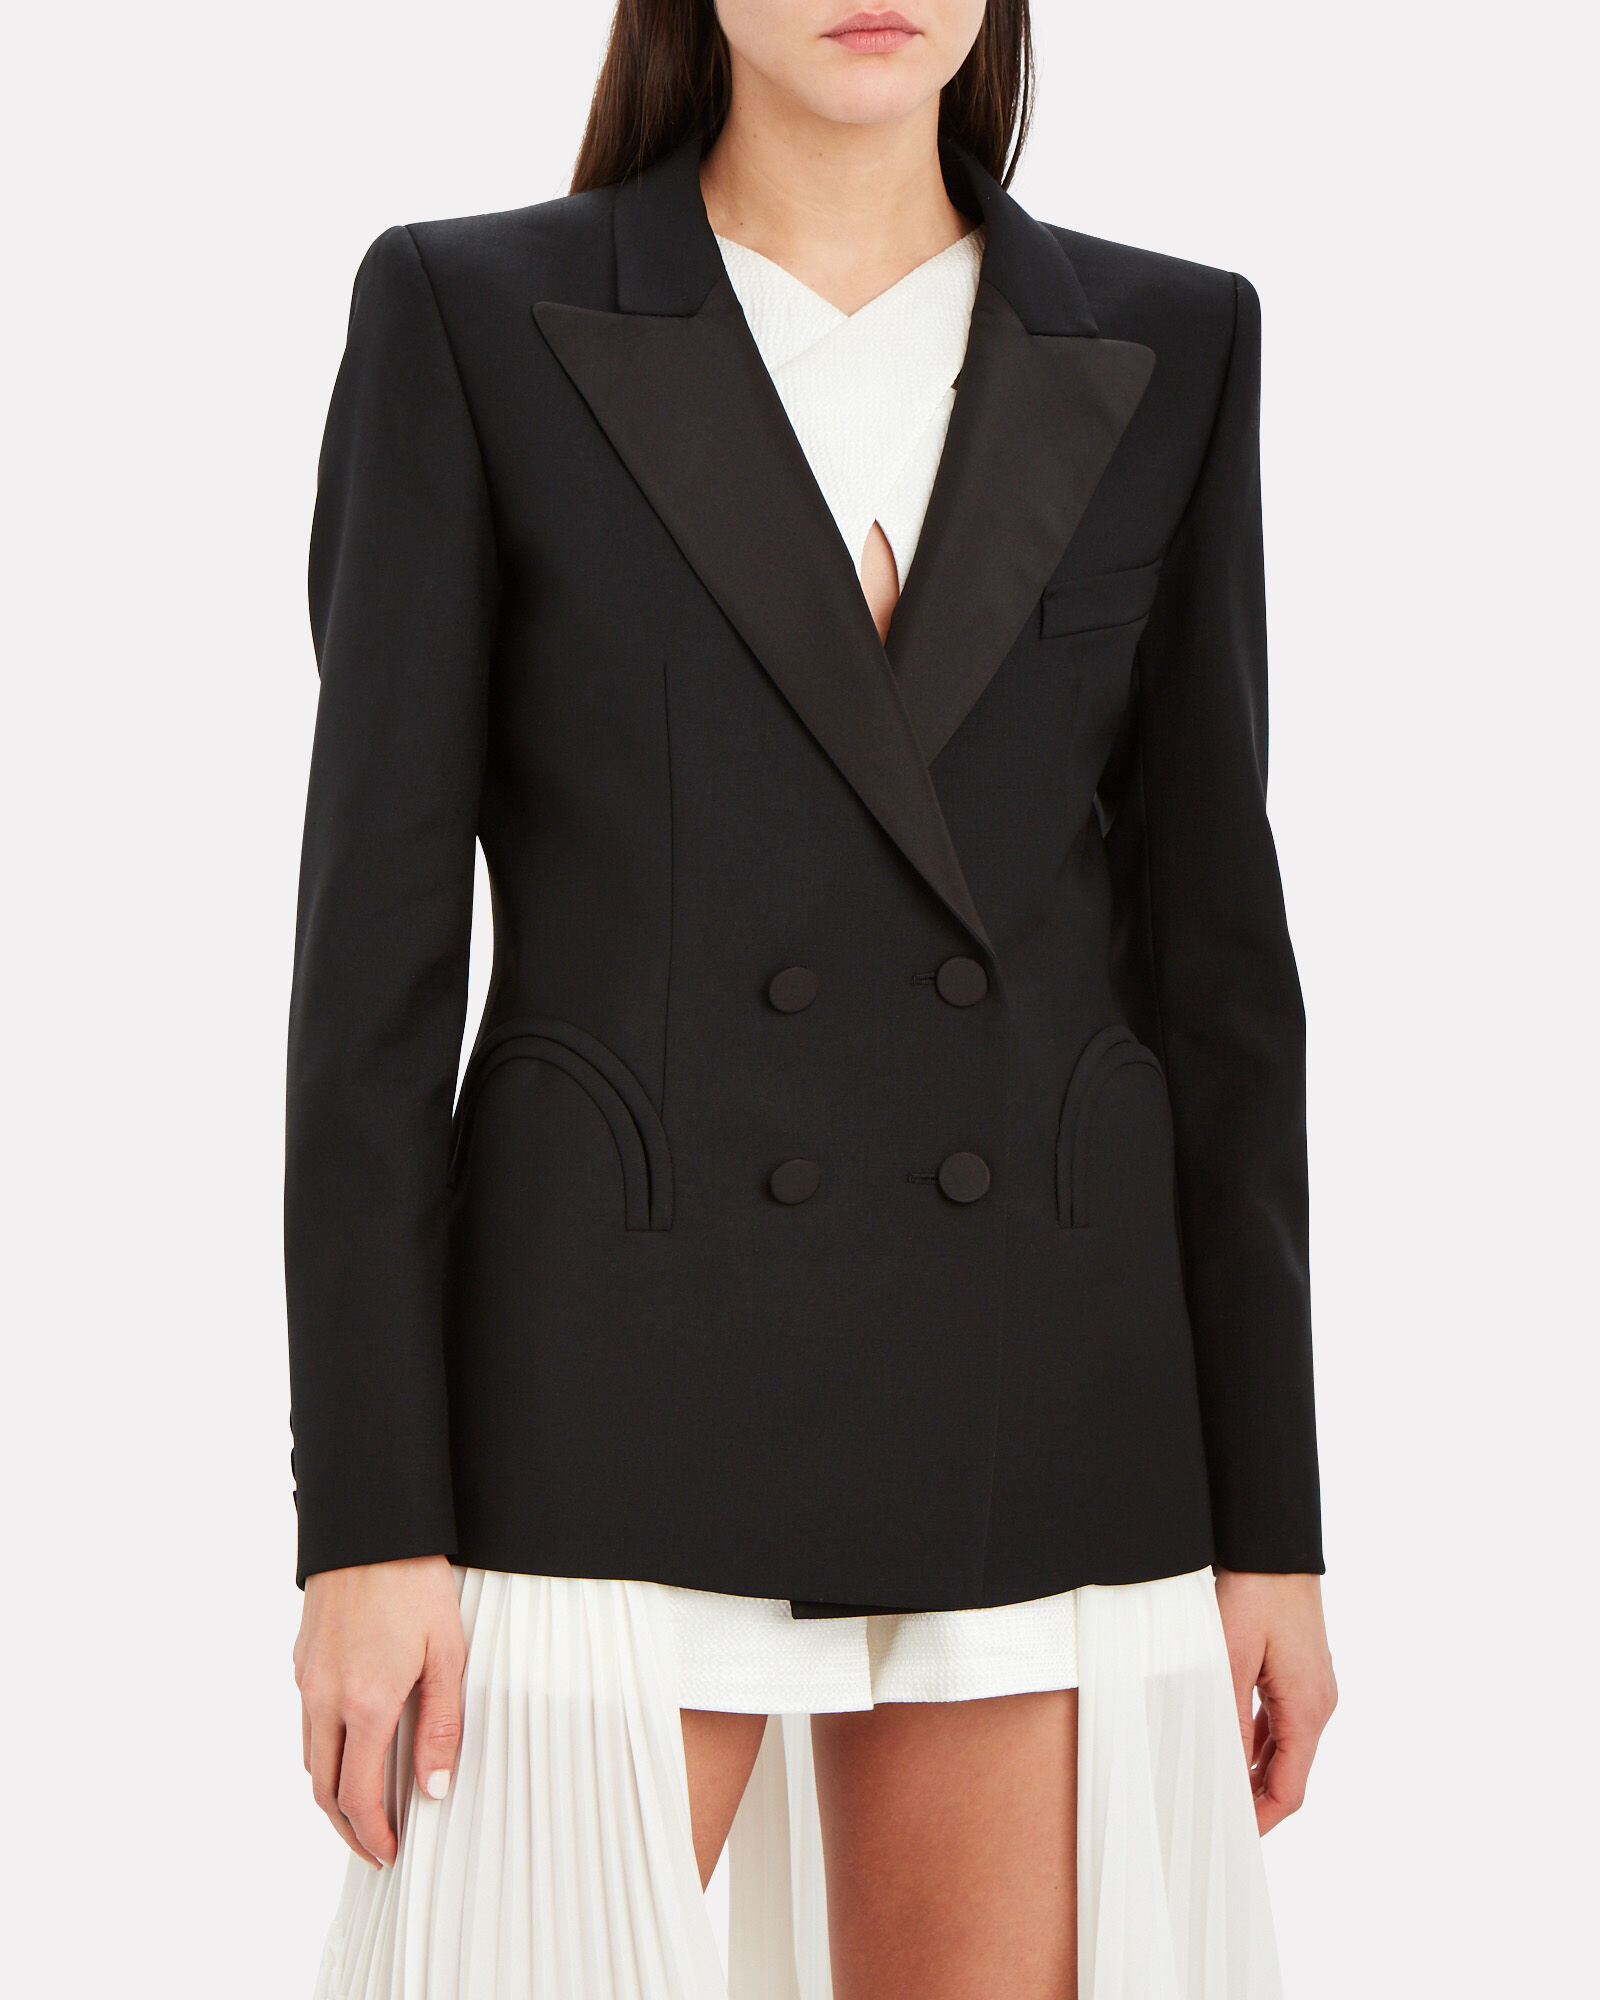 Charmer Fitted Double-Breasted Blazer, BLACK, hi-res